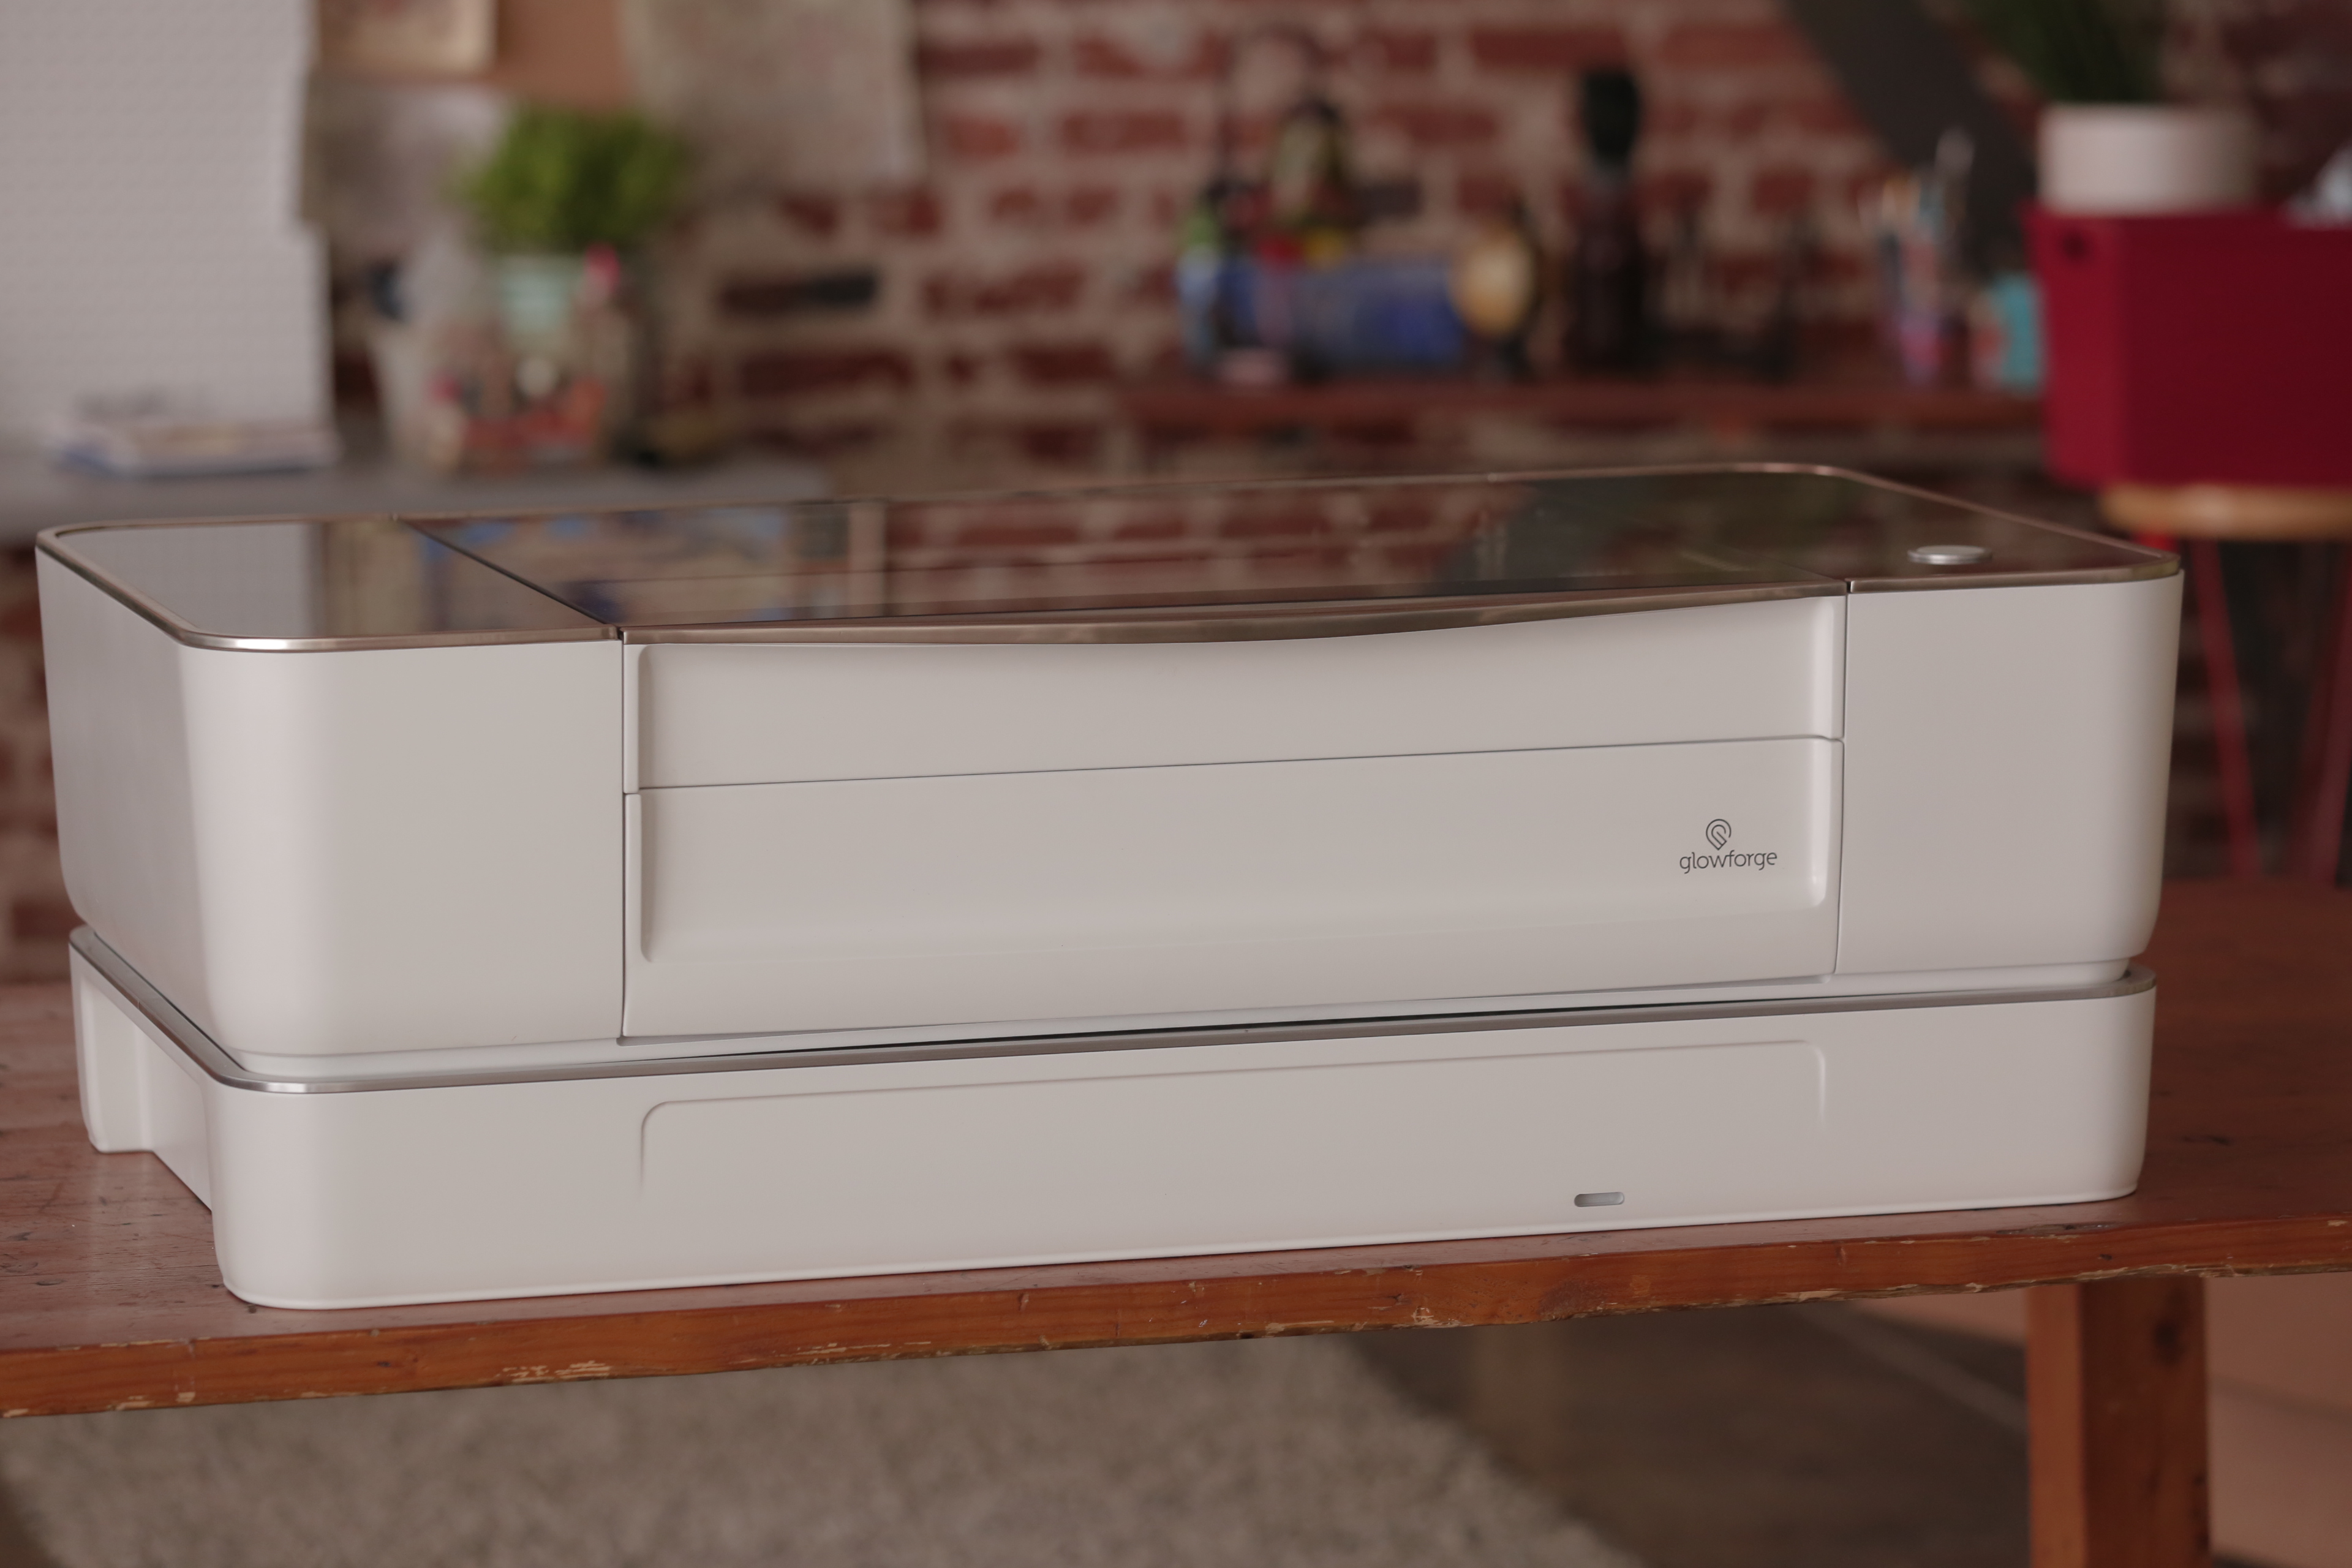 The Glowforge laser cutter with air filter attached underneath.